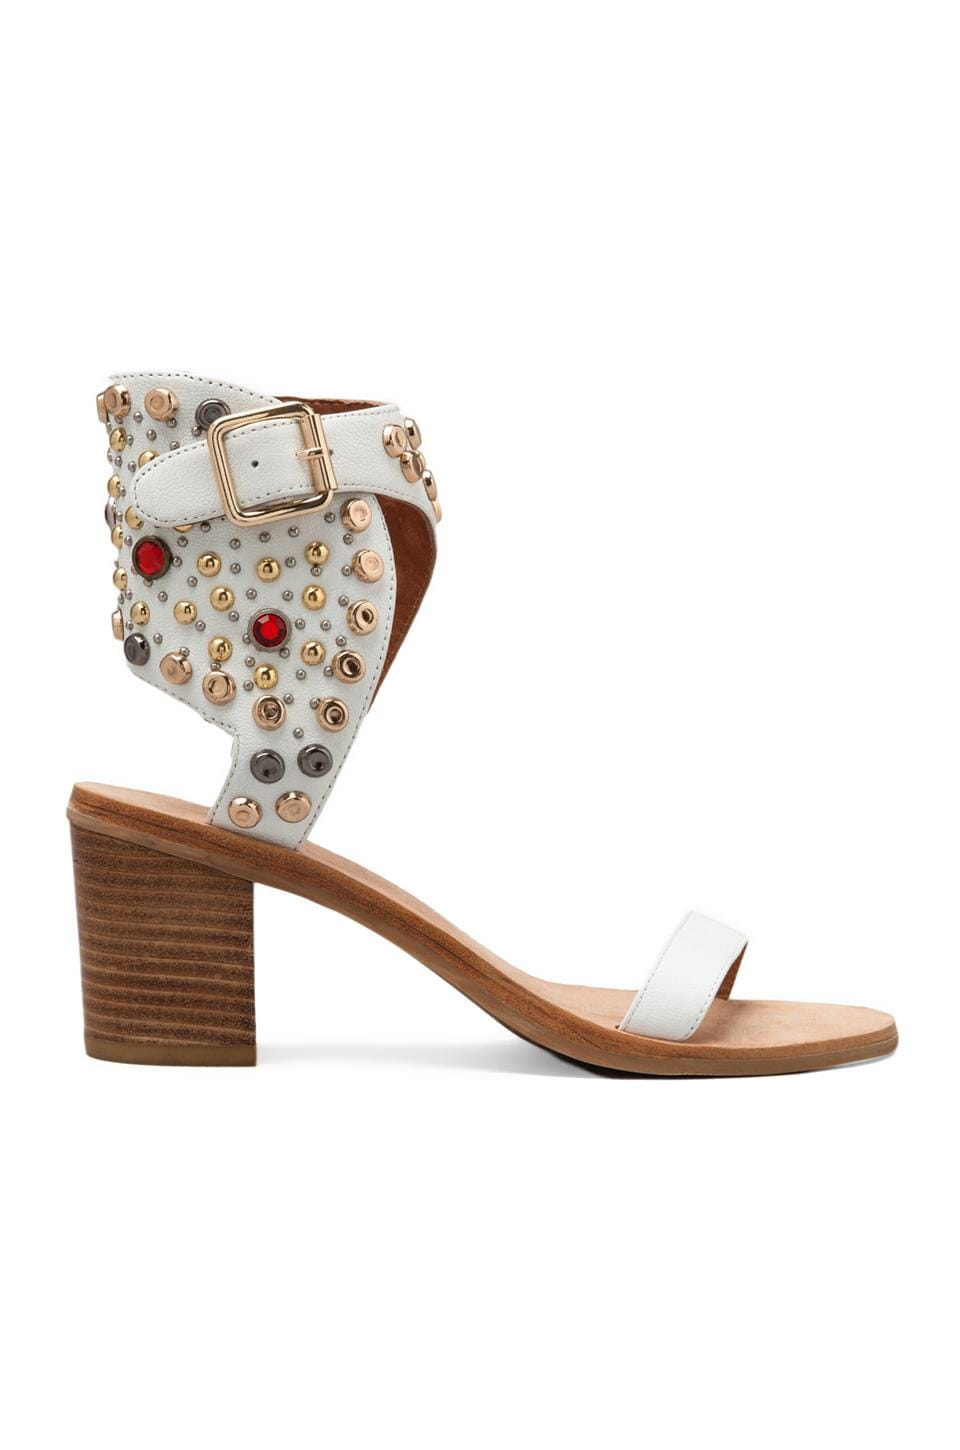 Jeffrey Campbell Sandales Seneca en White Leather Multi